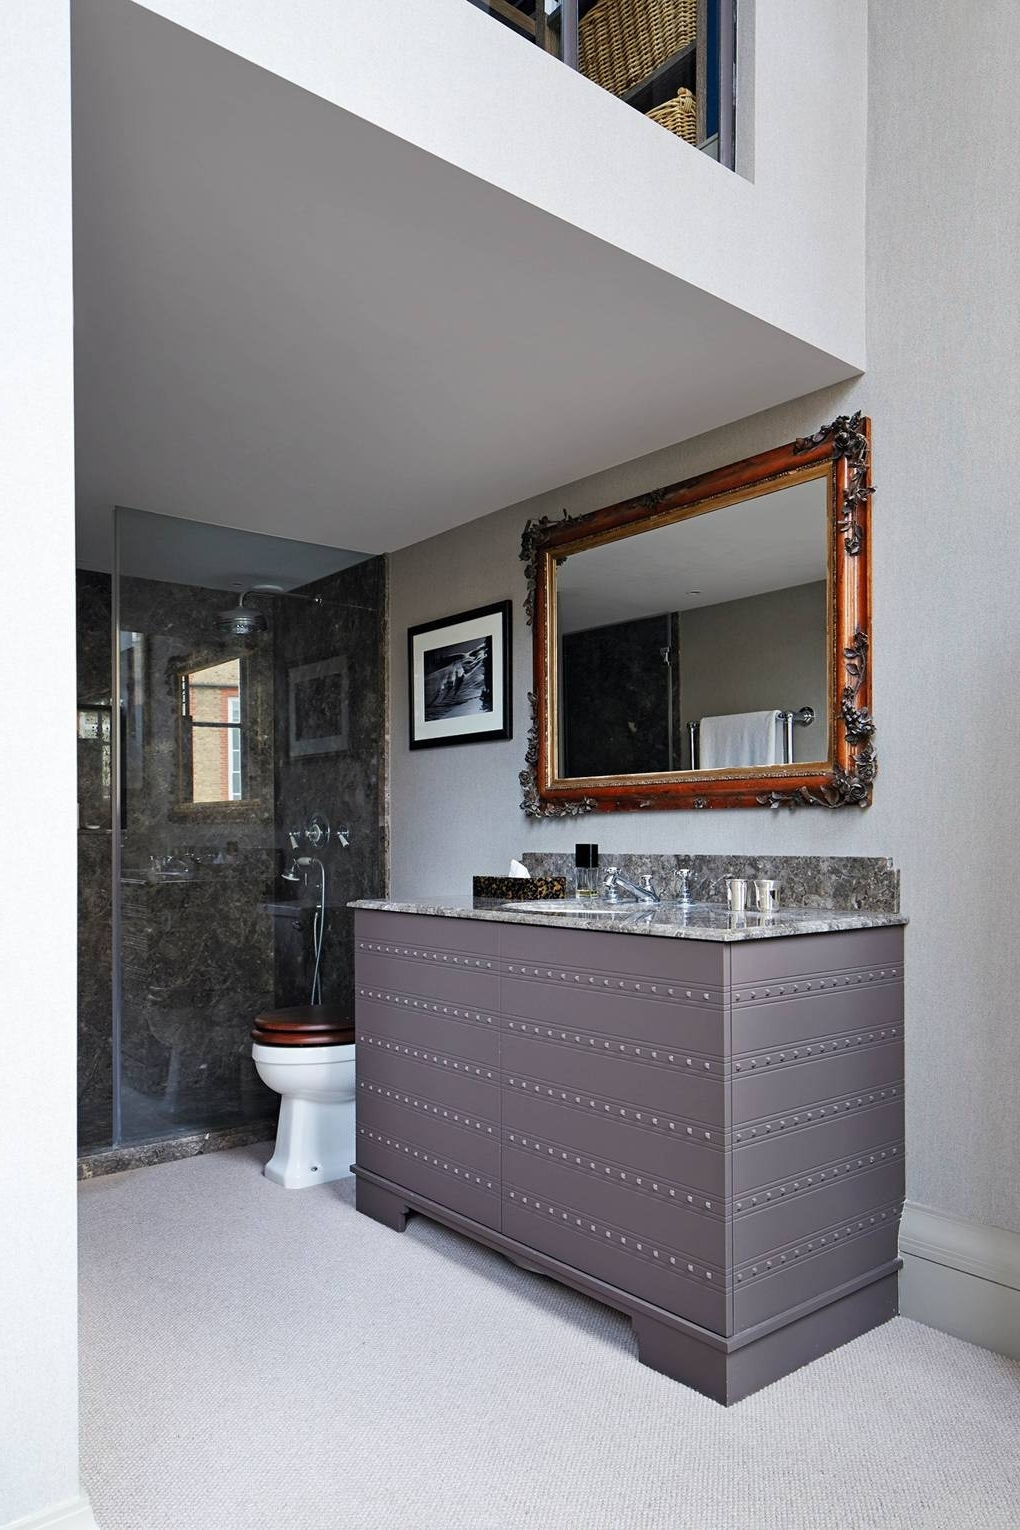 Bathroom With No Window Bathroom Ideas | House & Garden 20+ Small Windowless Bathroom Decorating Ideas